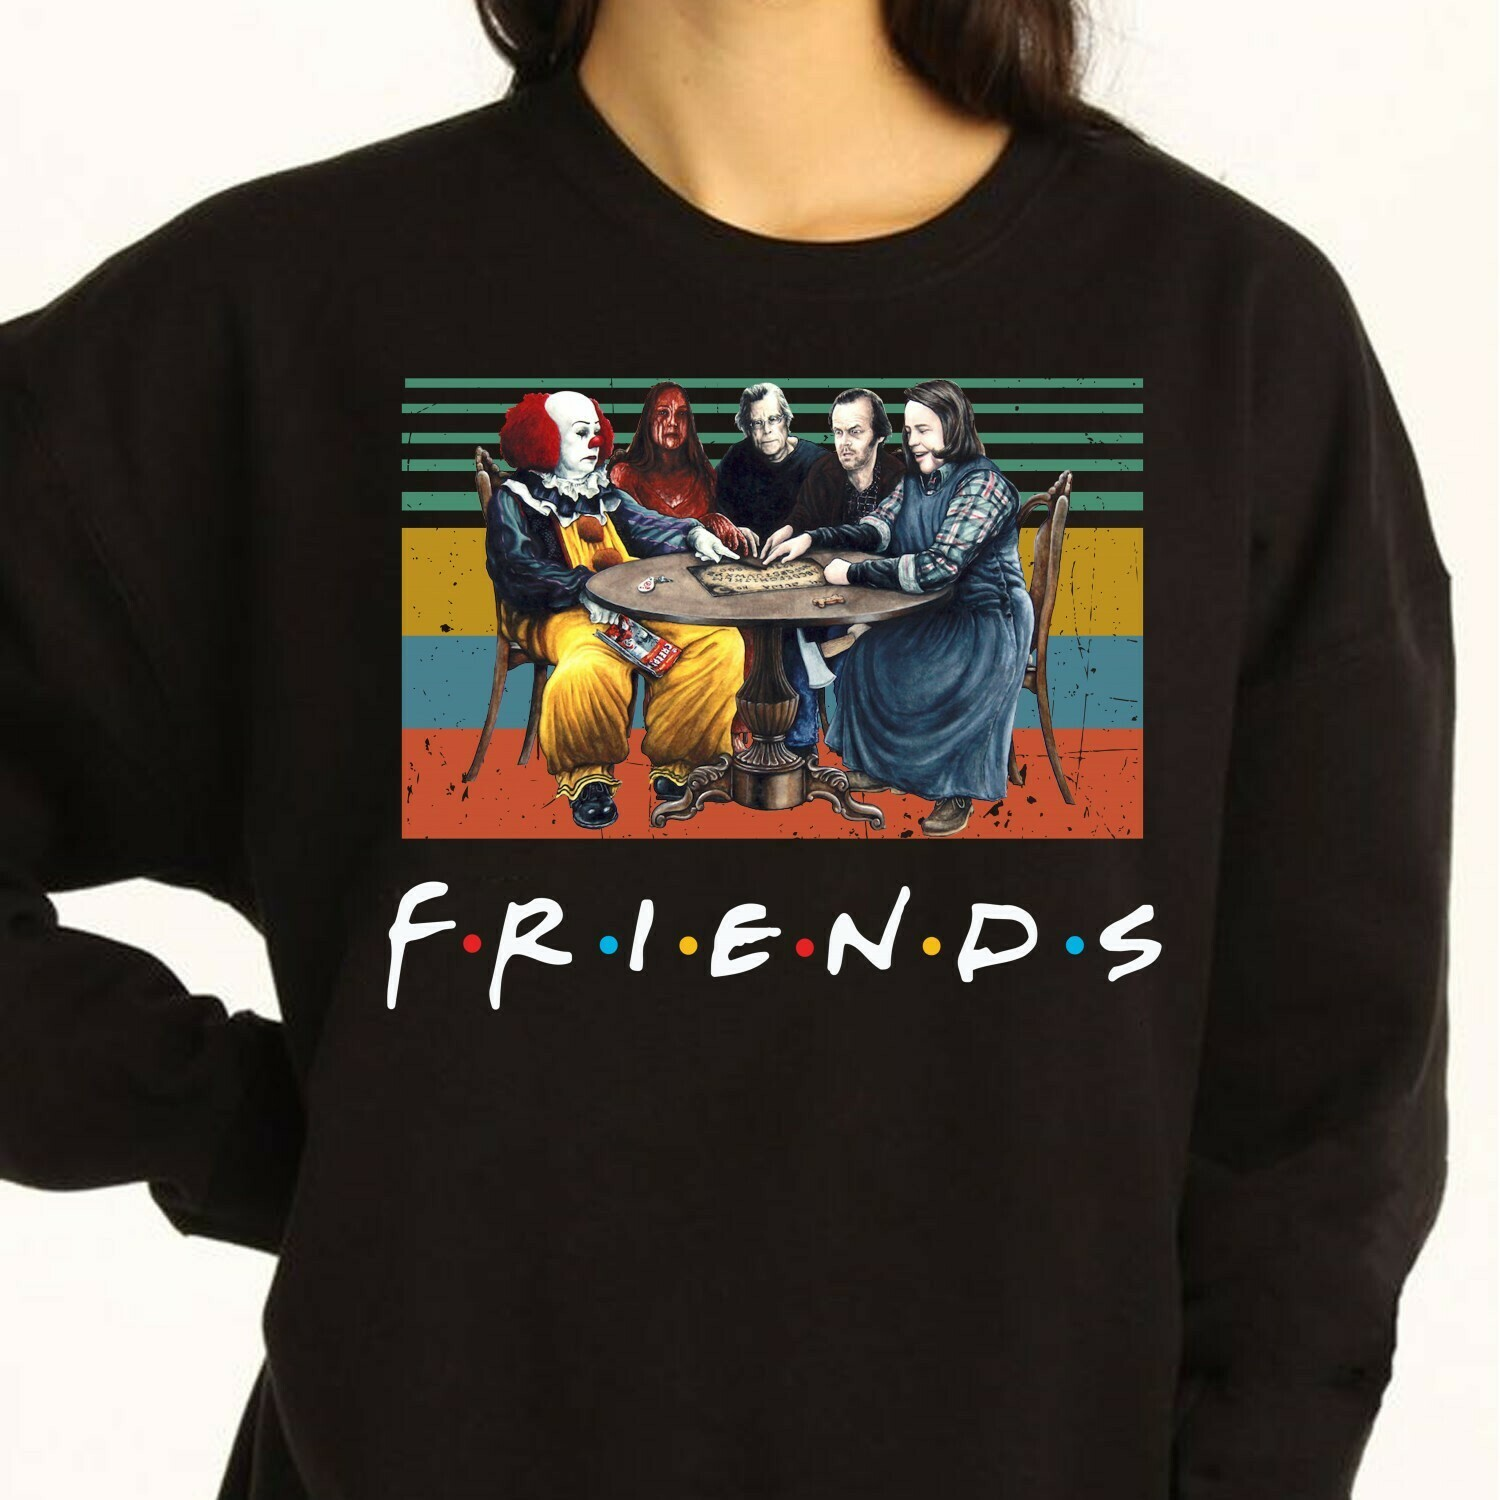 Friends IT Characters Halloween Jocker Horror Pennywise Squad We All Float Down Here Squad Villains Movie Mashup T-Shirt Long Sleeve Sweatshirt Hoodie Jolly Family Gifts